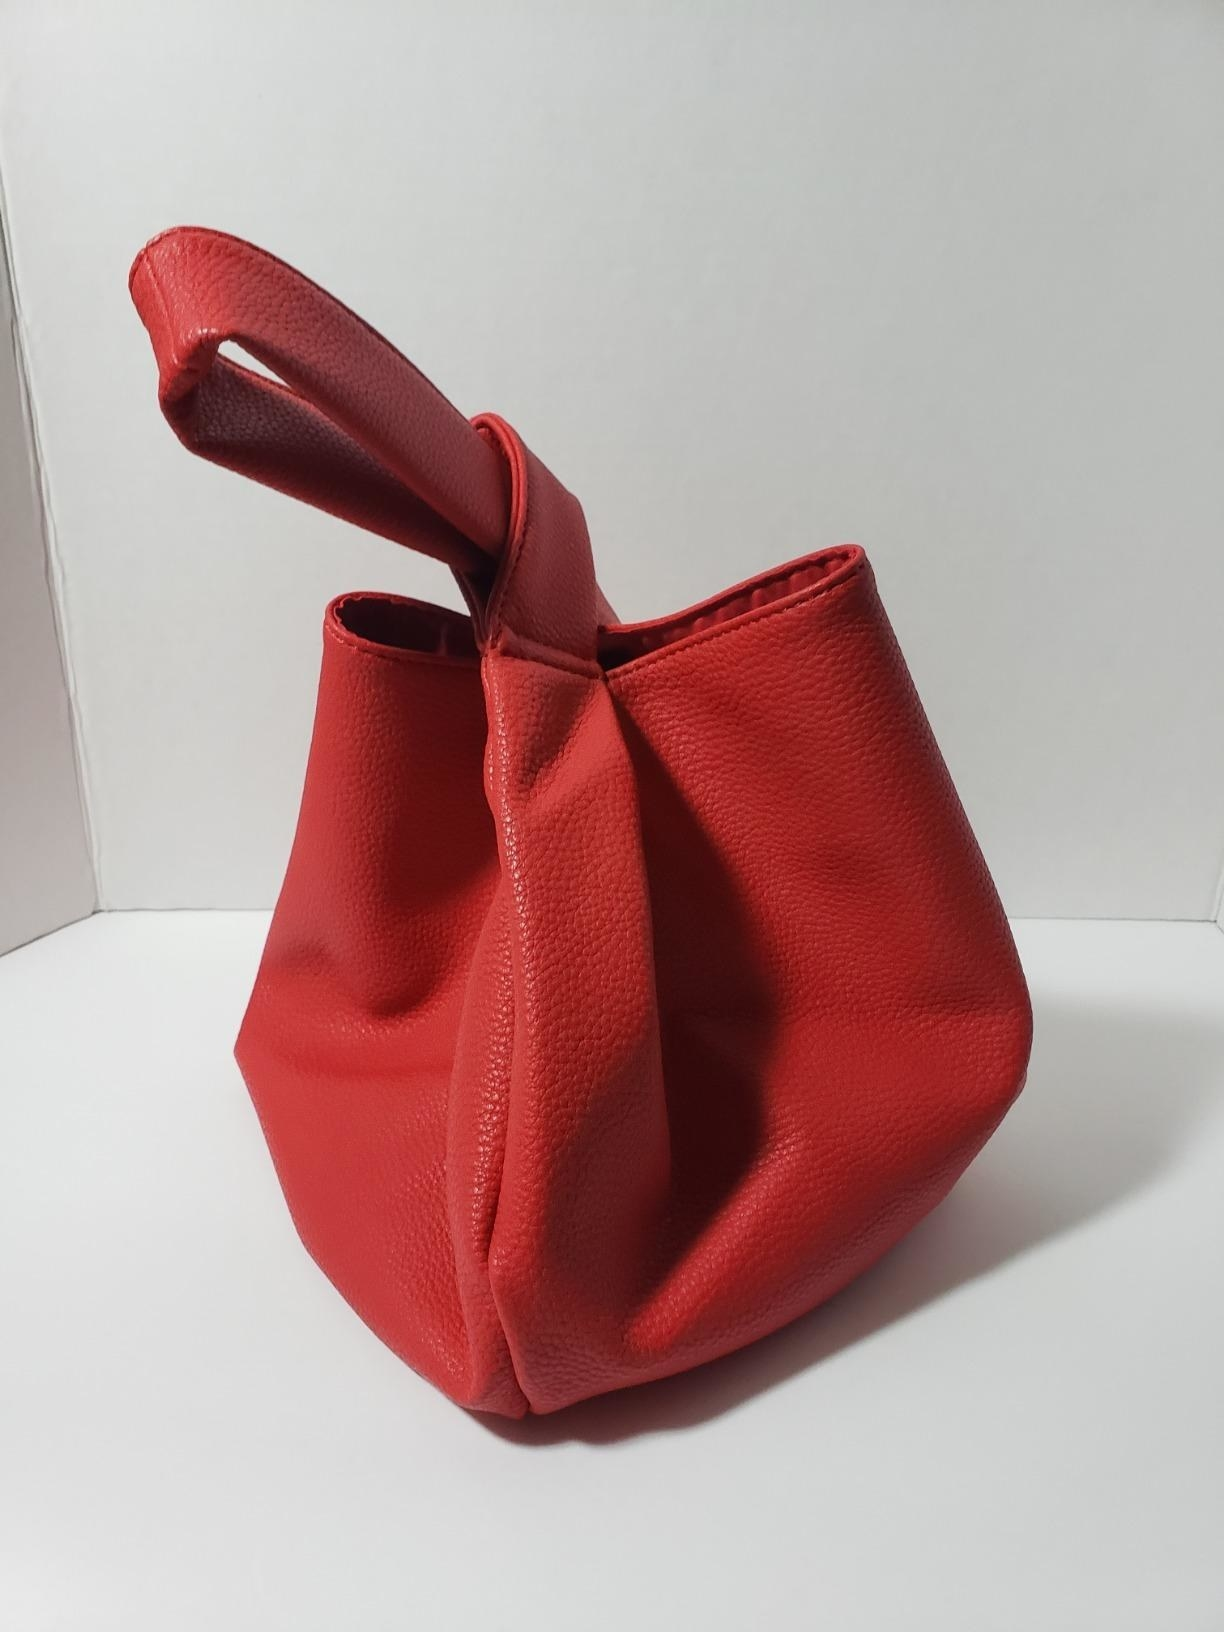 Reviewer's photo of their red bag